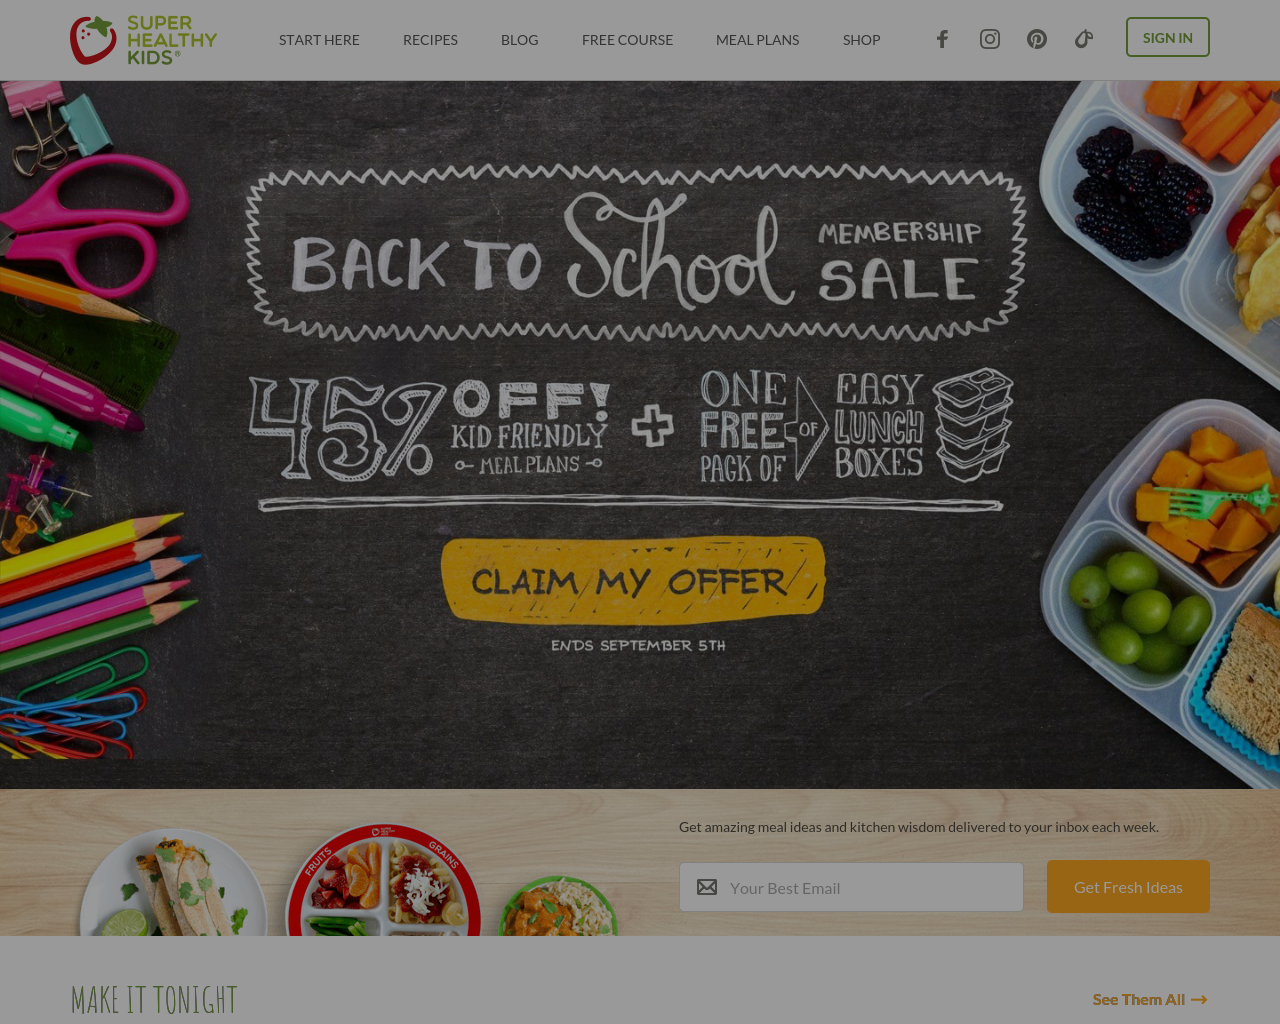 Super-Healthy-Kids-Advertising-Reviews-Pricing